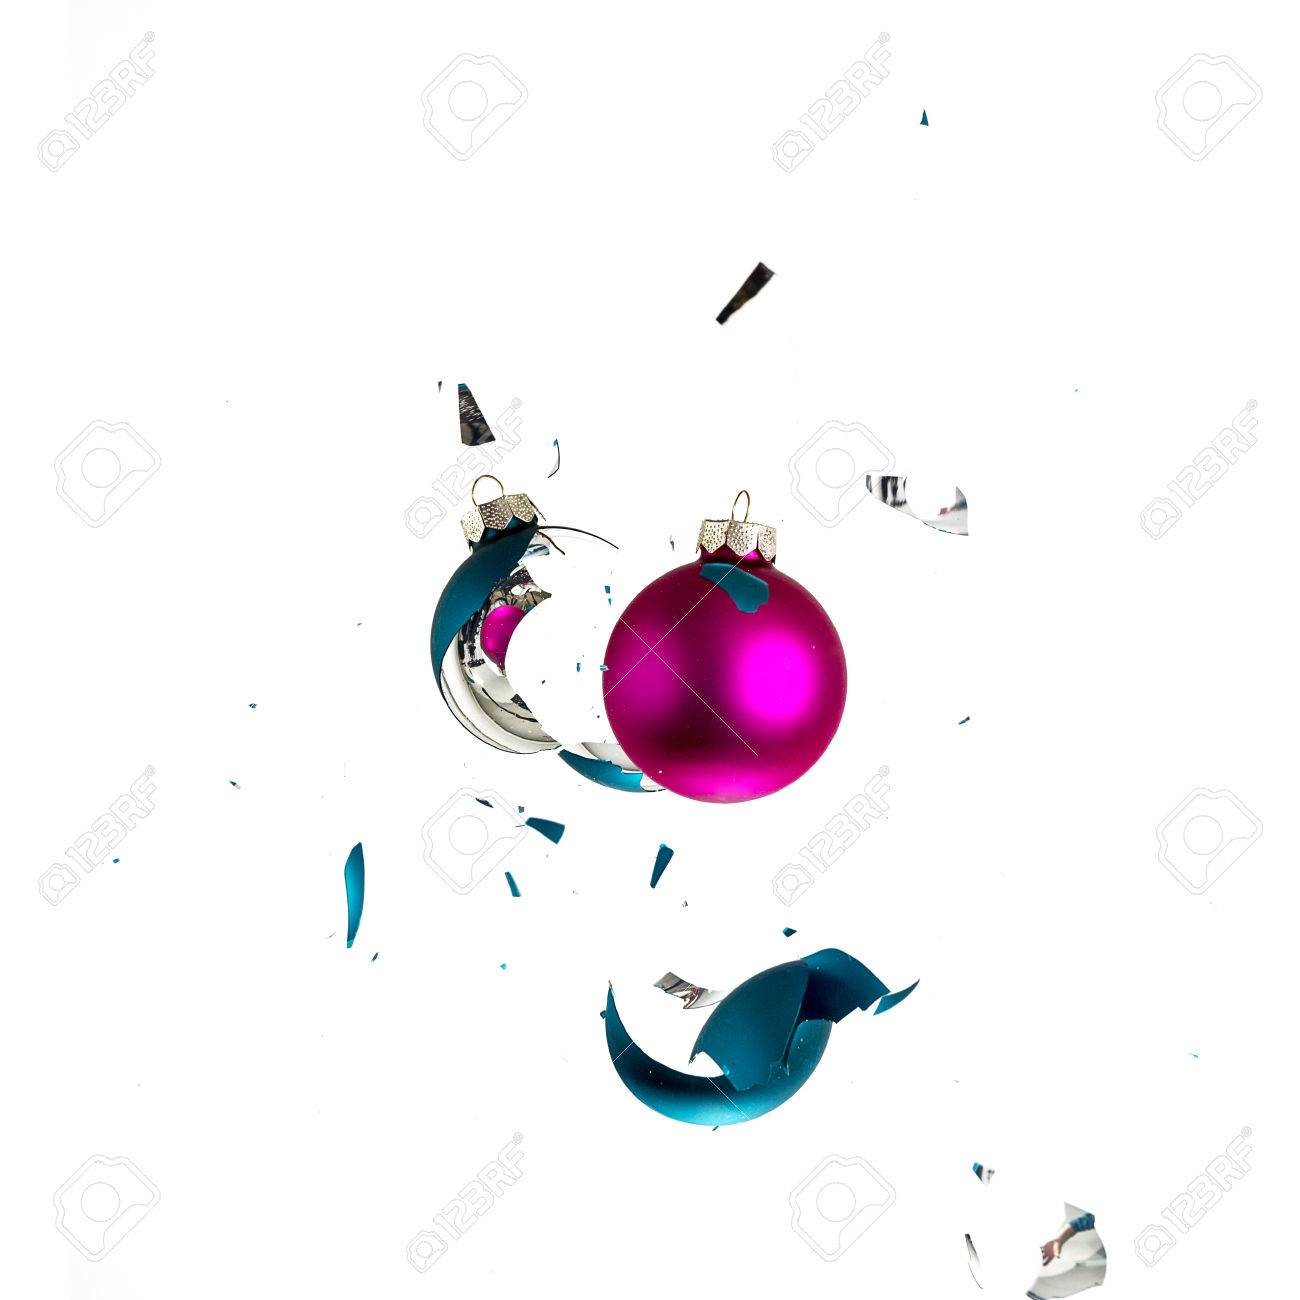 Blue green christmas tree decorations - Stock Photo Christmas Ball Explosion Shattered Christmas Tree Blue Green Pink Ornament Decoration Impact